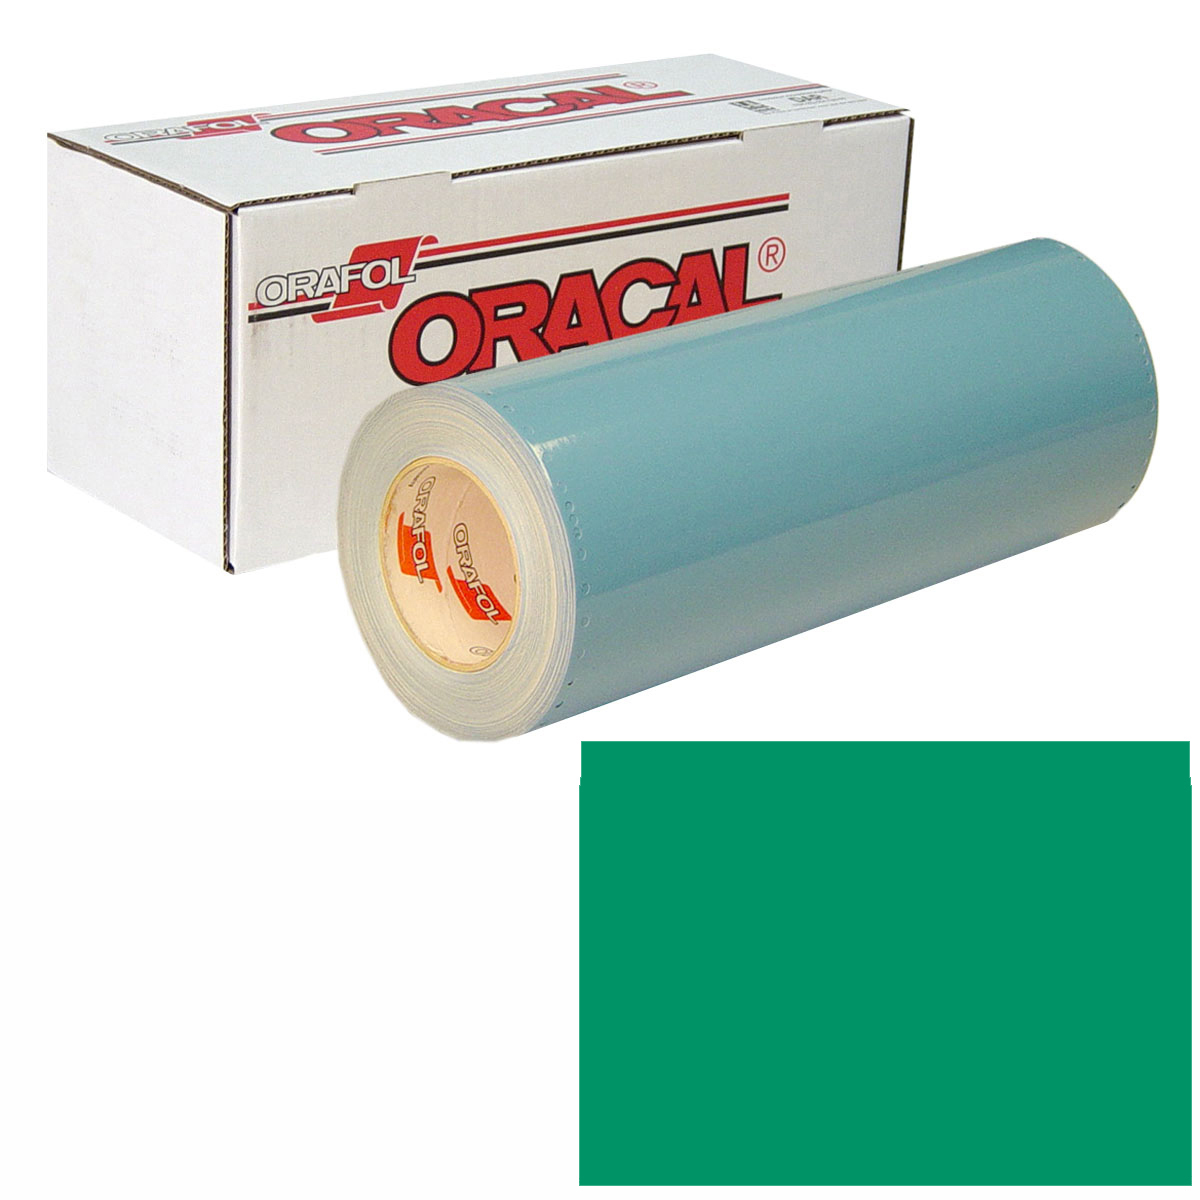 ORACAL 751 30in X 50yd 061 Green